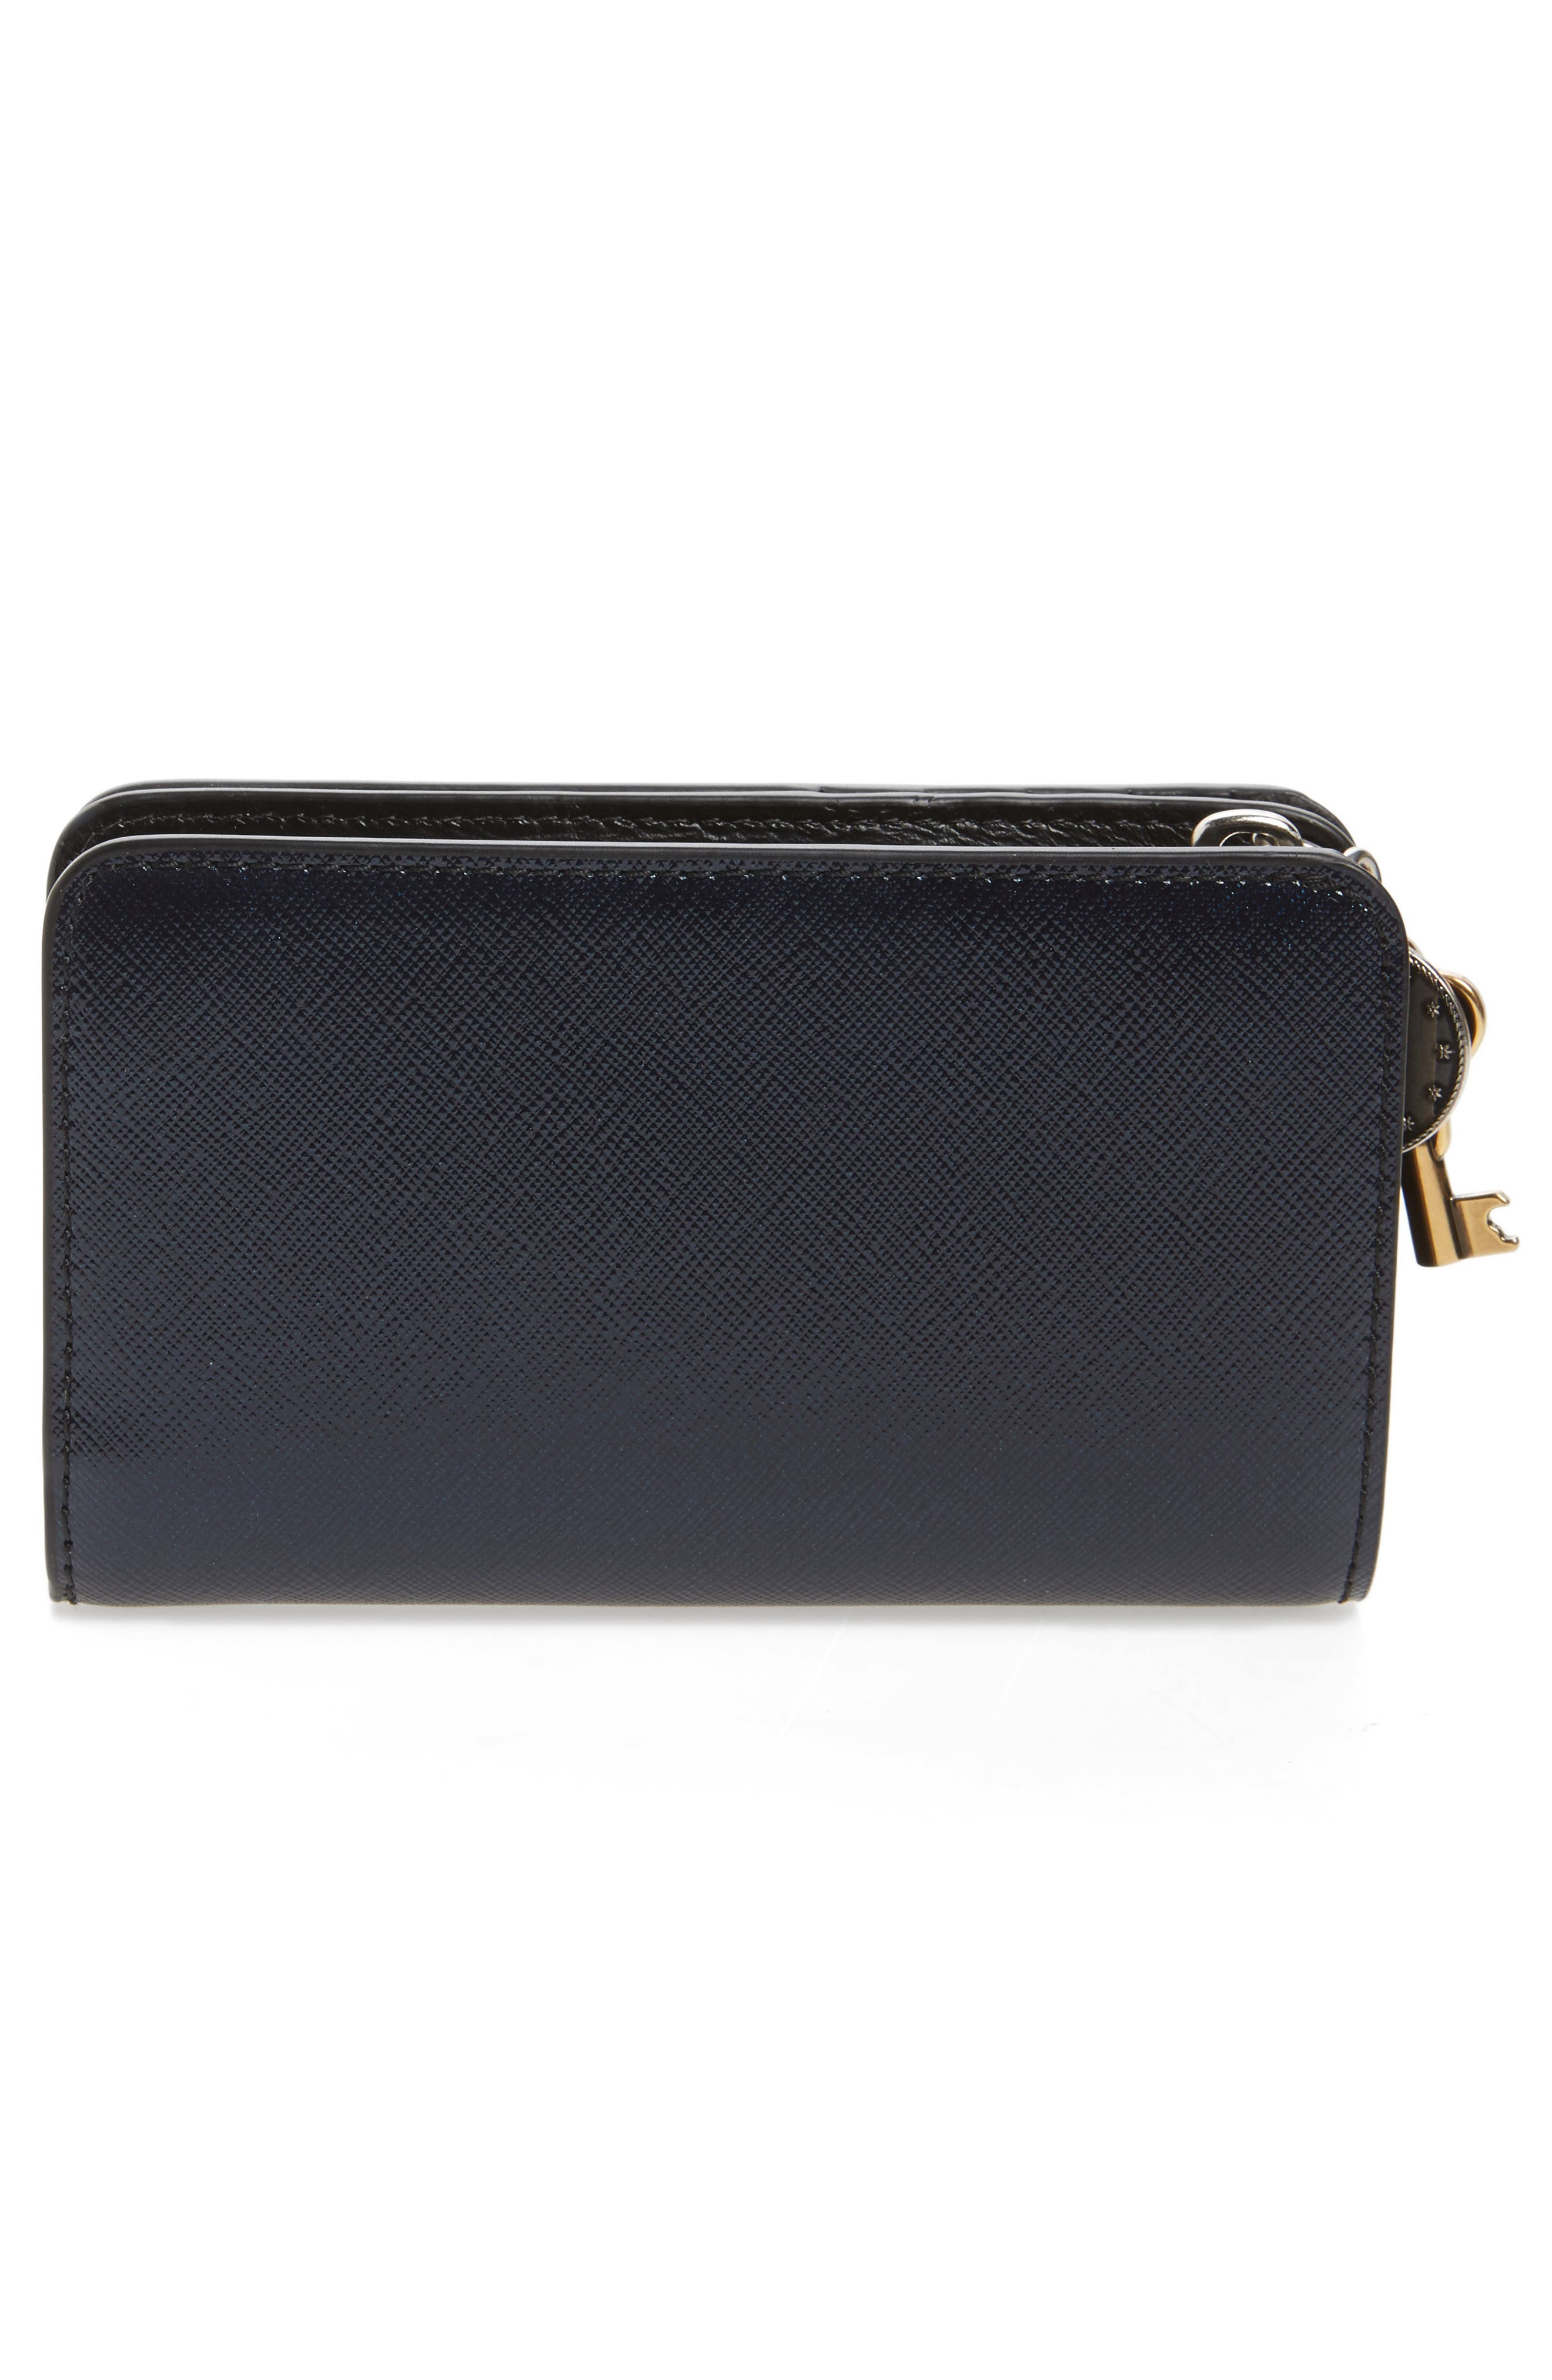 Saffiano Leather Compact Wallet,                             Alternate thumbnail 3, color,                             410